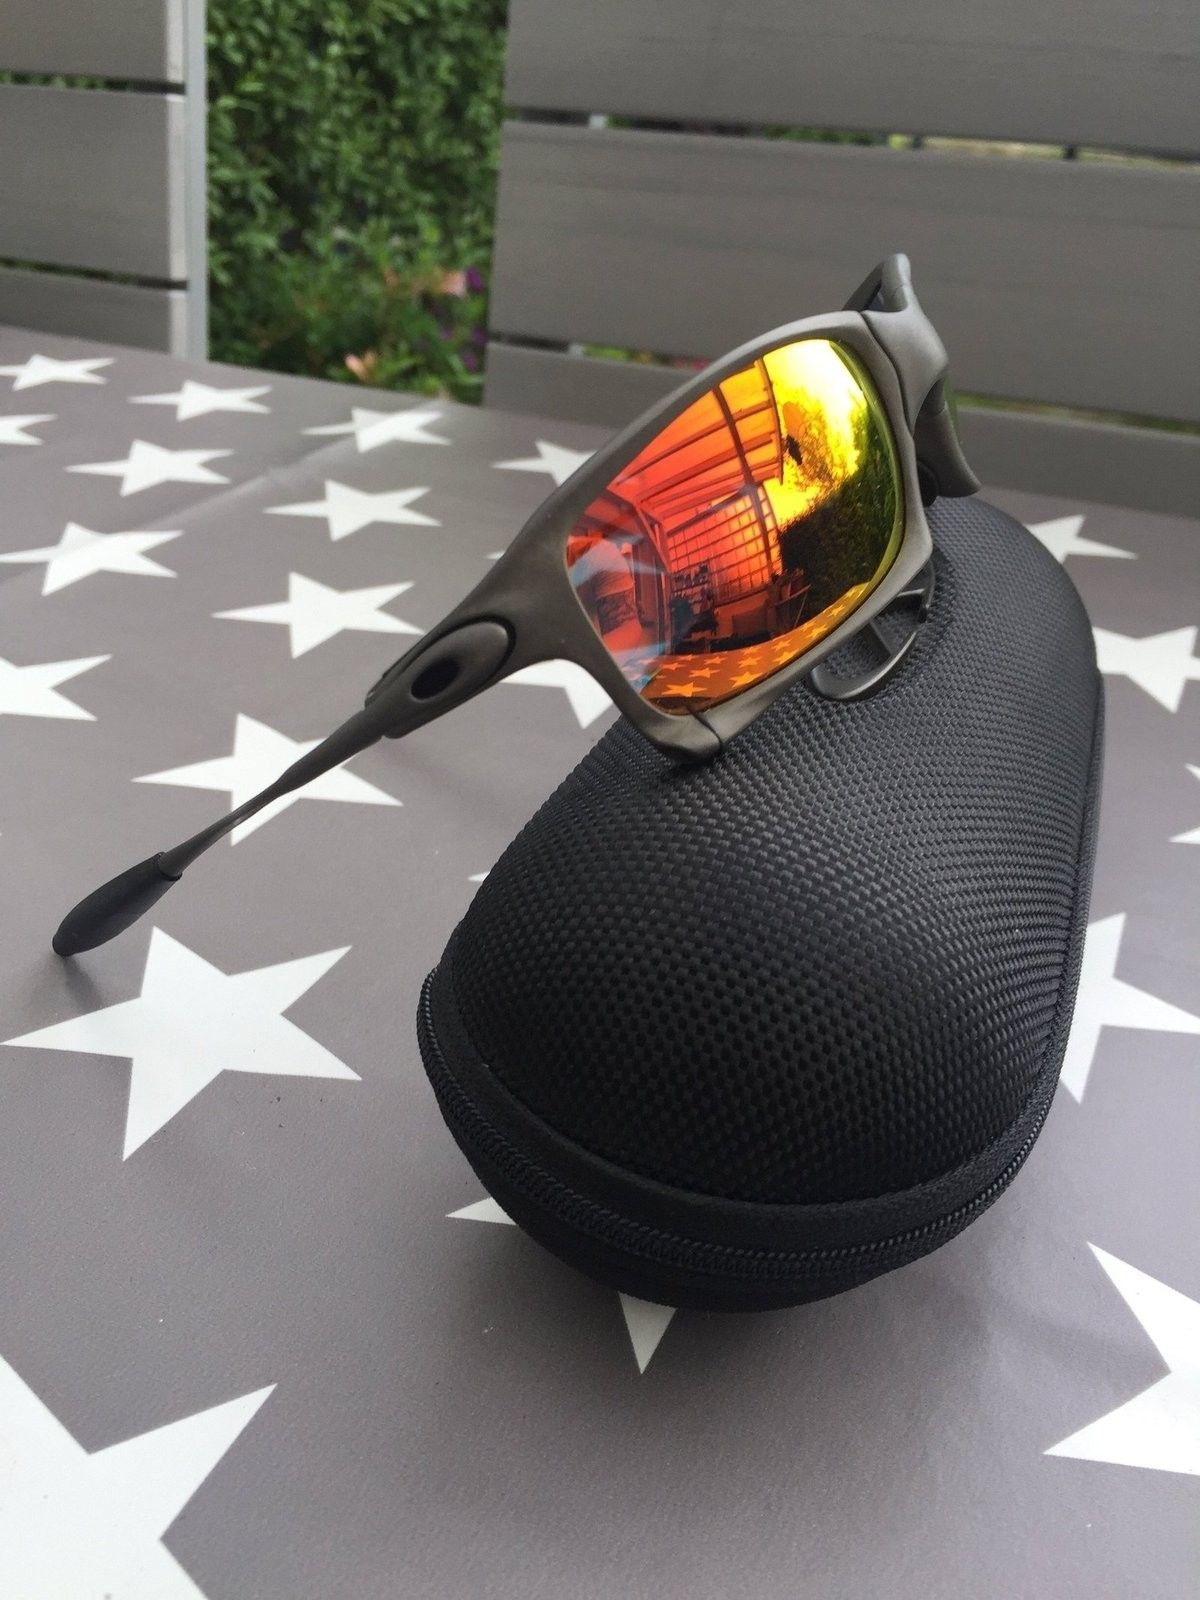 XS X Metal with Ruby/Fire lenses SOLD - image.jpg